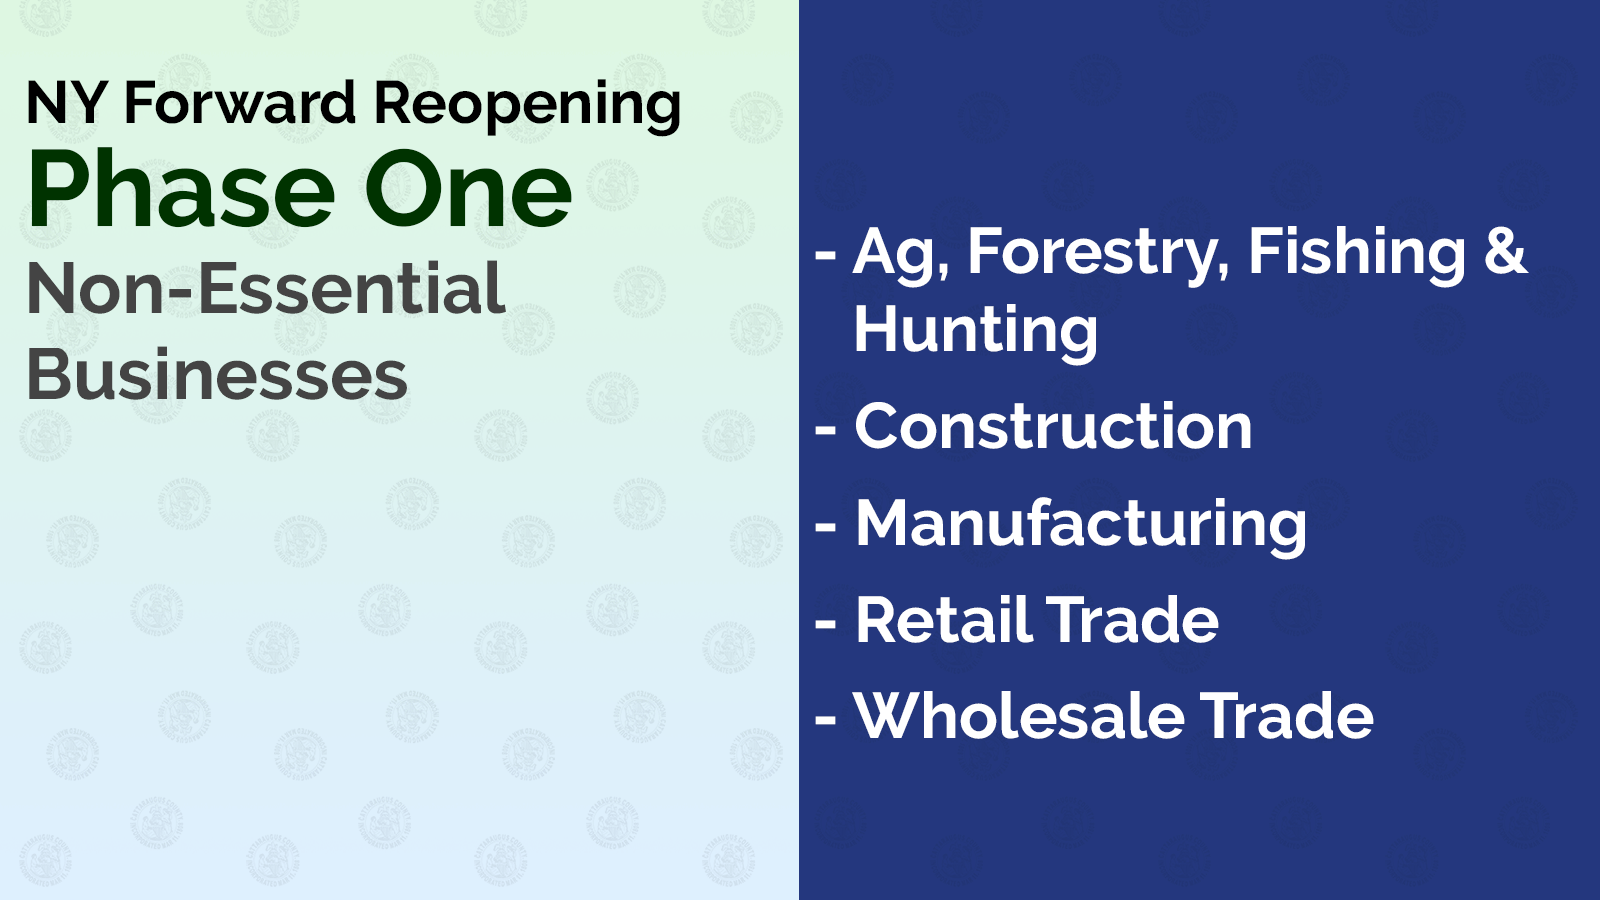 NY Forward Reopening Phase One: Non-Essential Businesses: - Ag, Forestry, Fishing & Hunting - Construction - Manufacturing - Retail Trade - Wholesale Trade